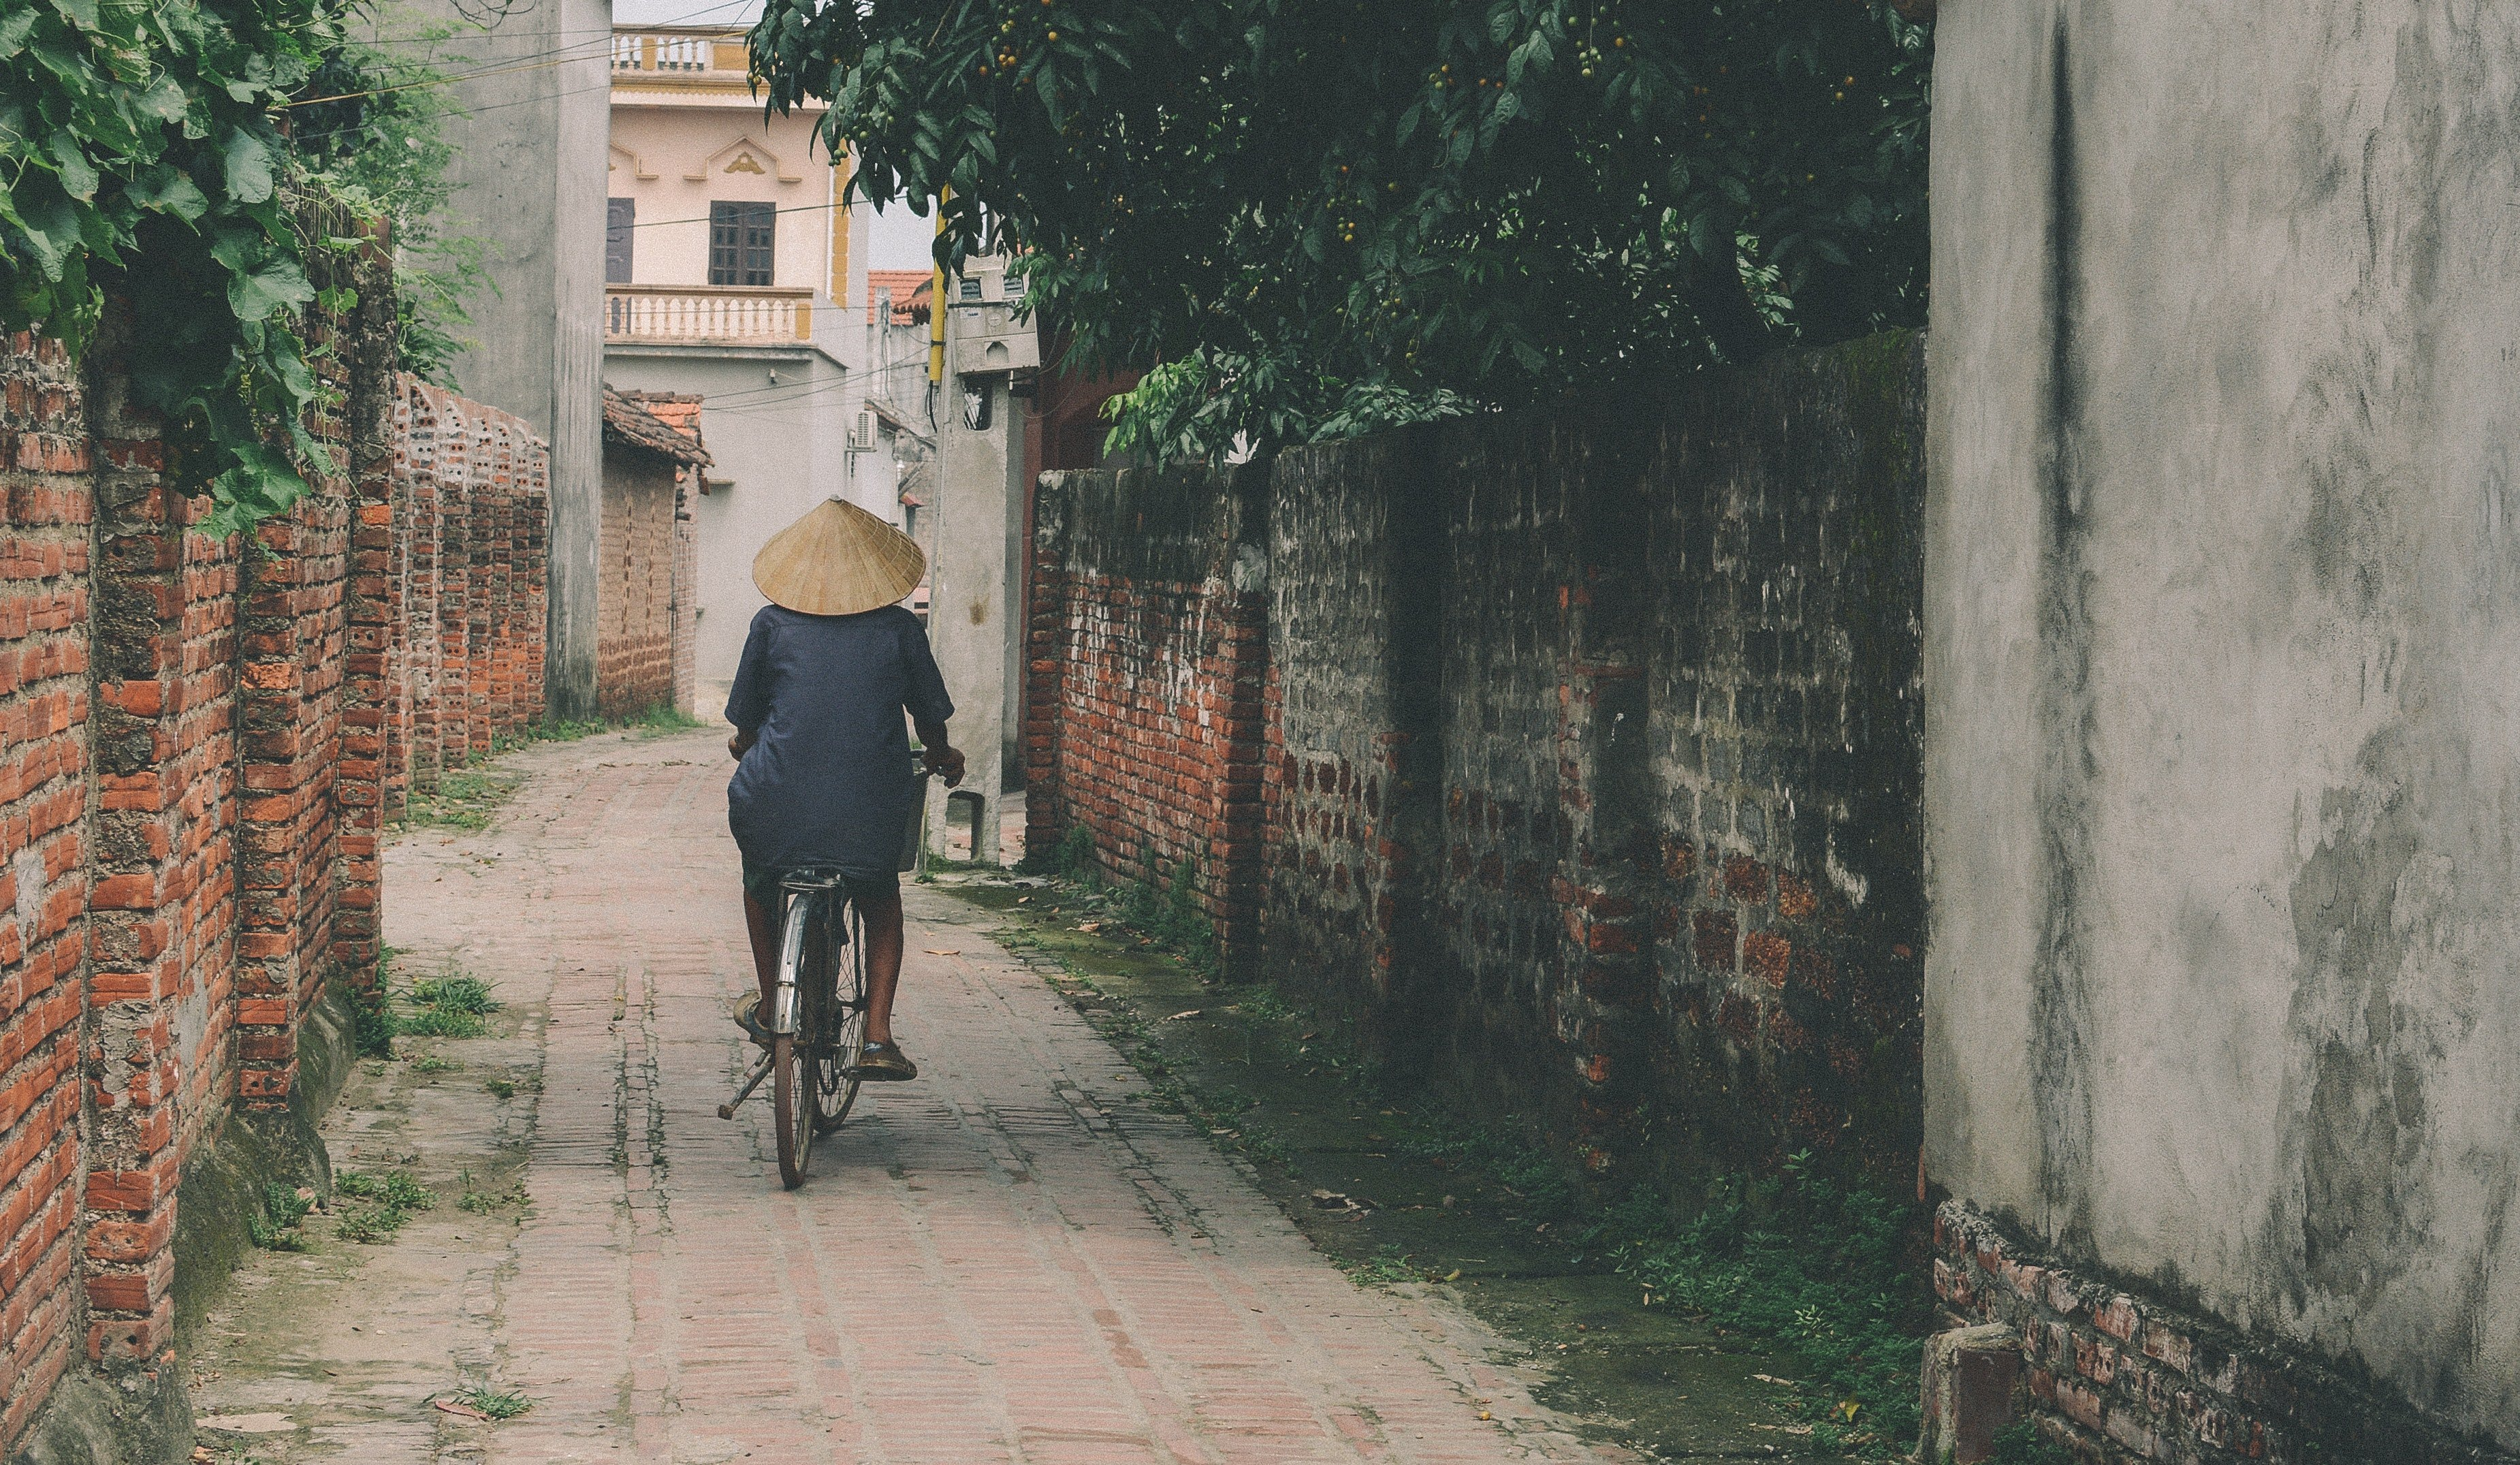 Person riding a bicycle in an alley   Photo: Pexels